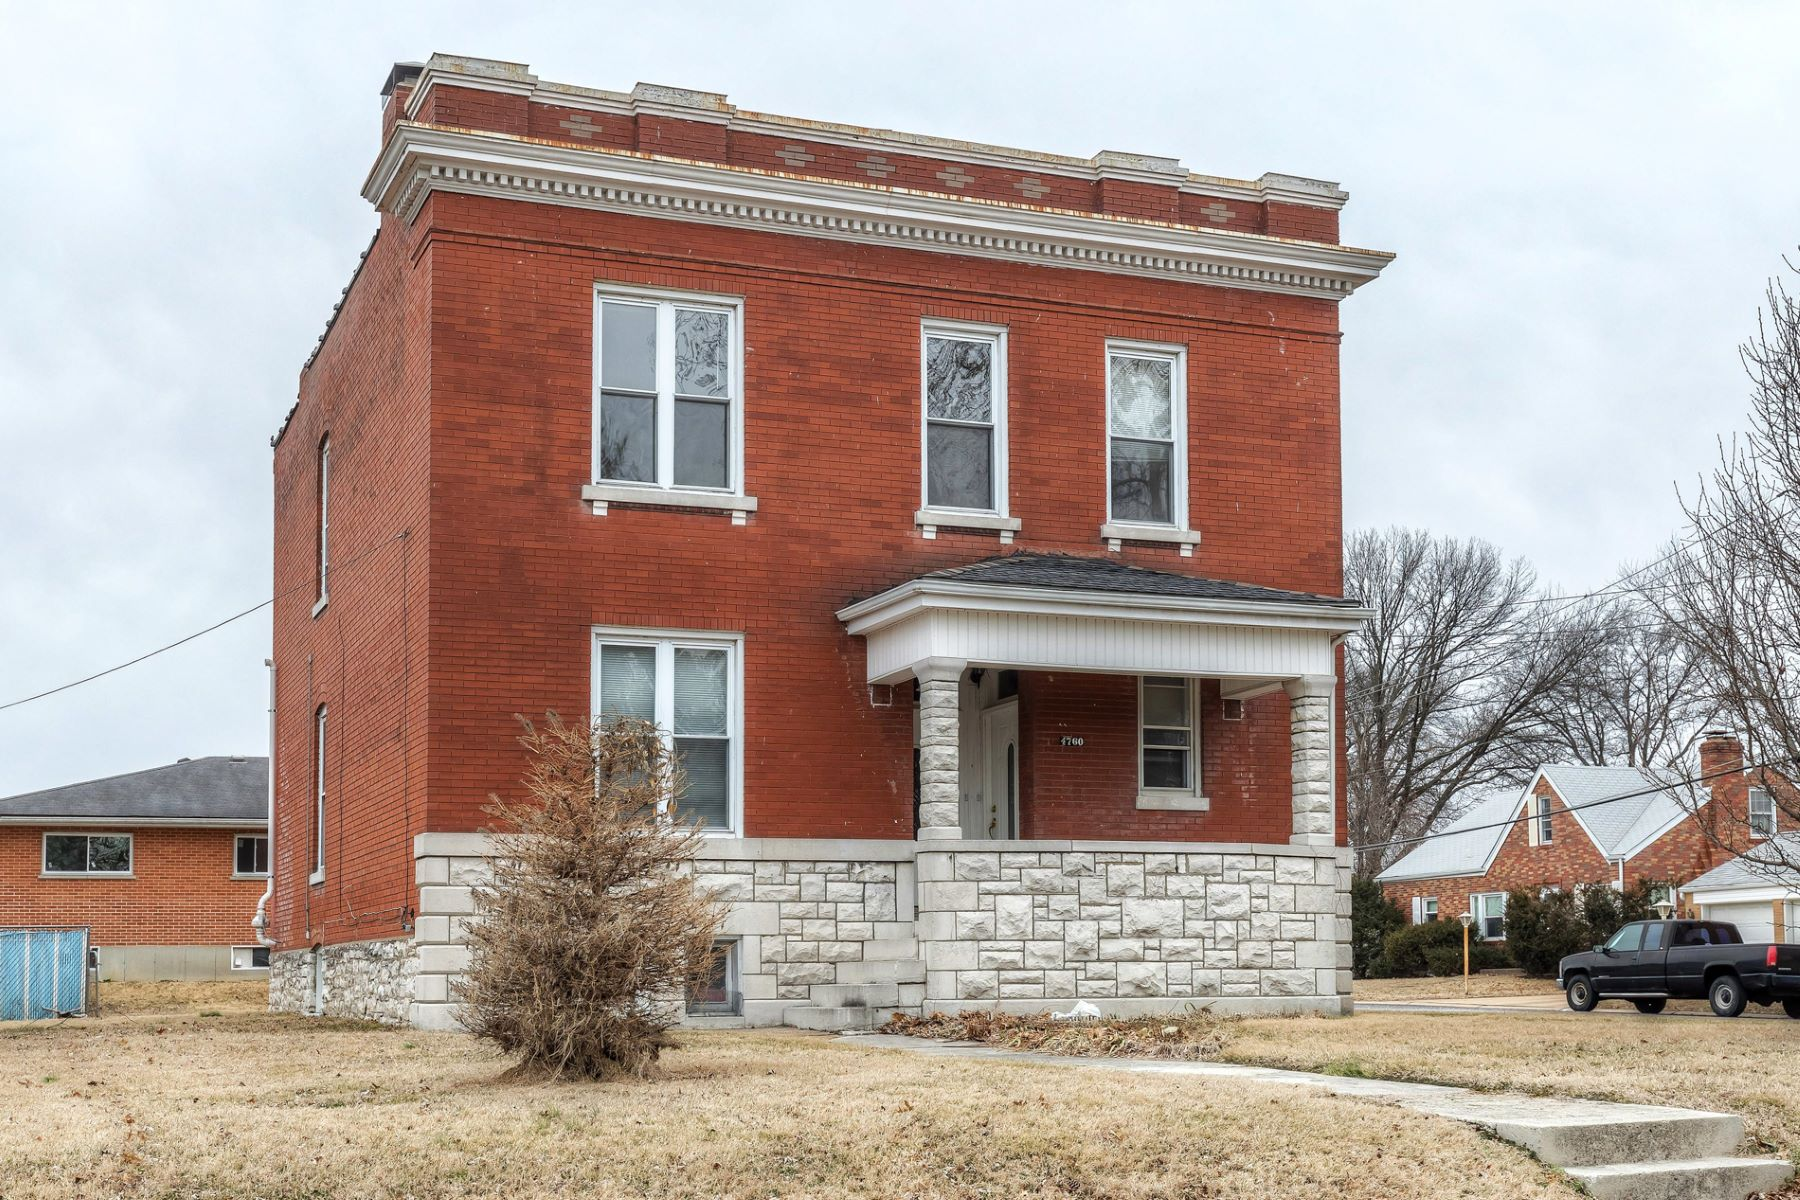 Multi-Family Home for Sale at Seibert Ave 4760 Seibert Ave St. Louis, Missouri 63123 United States